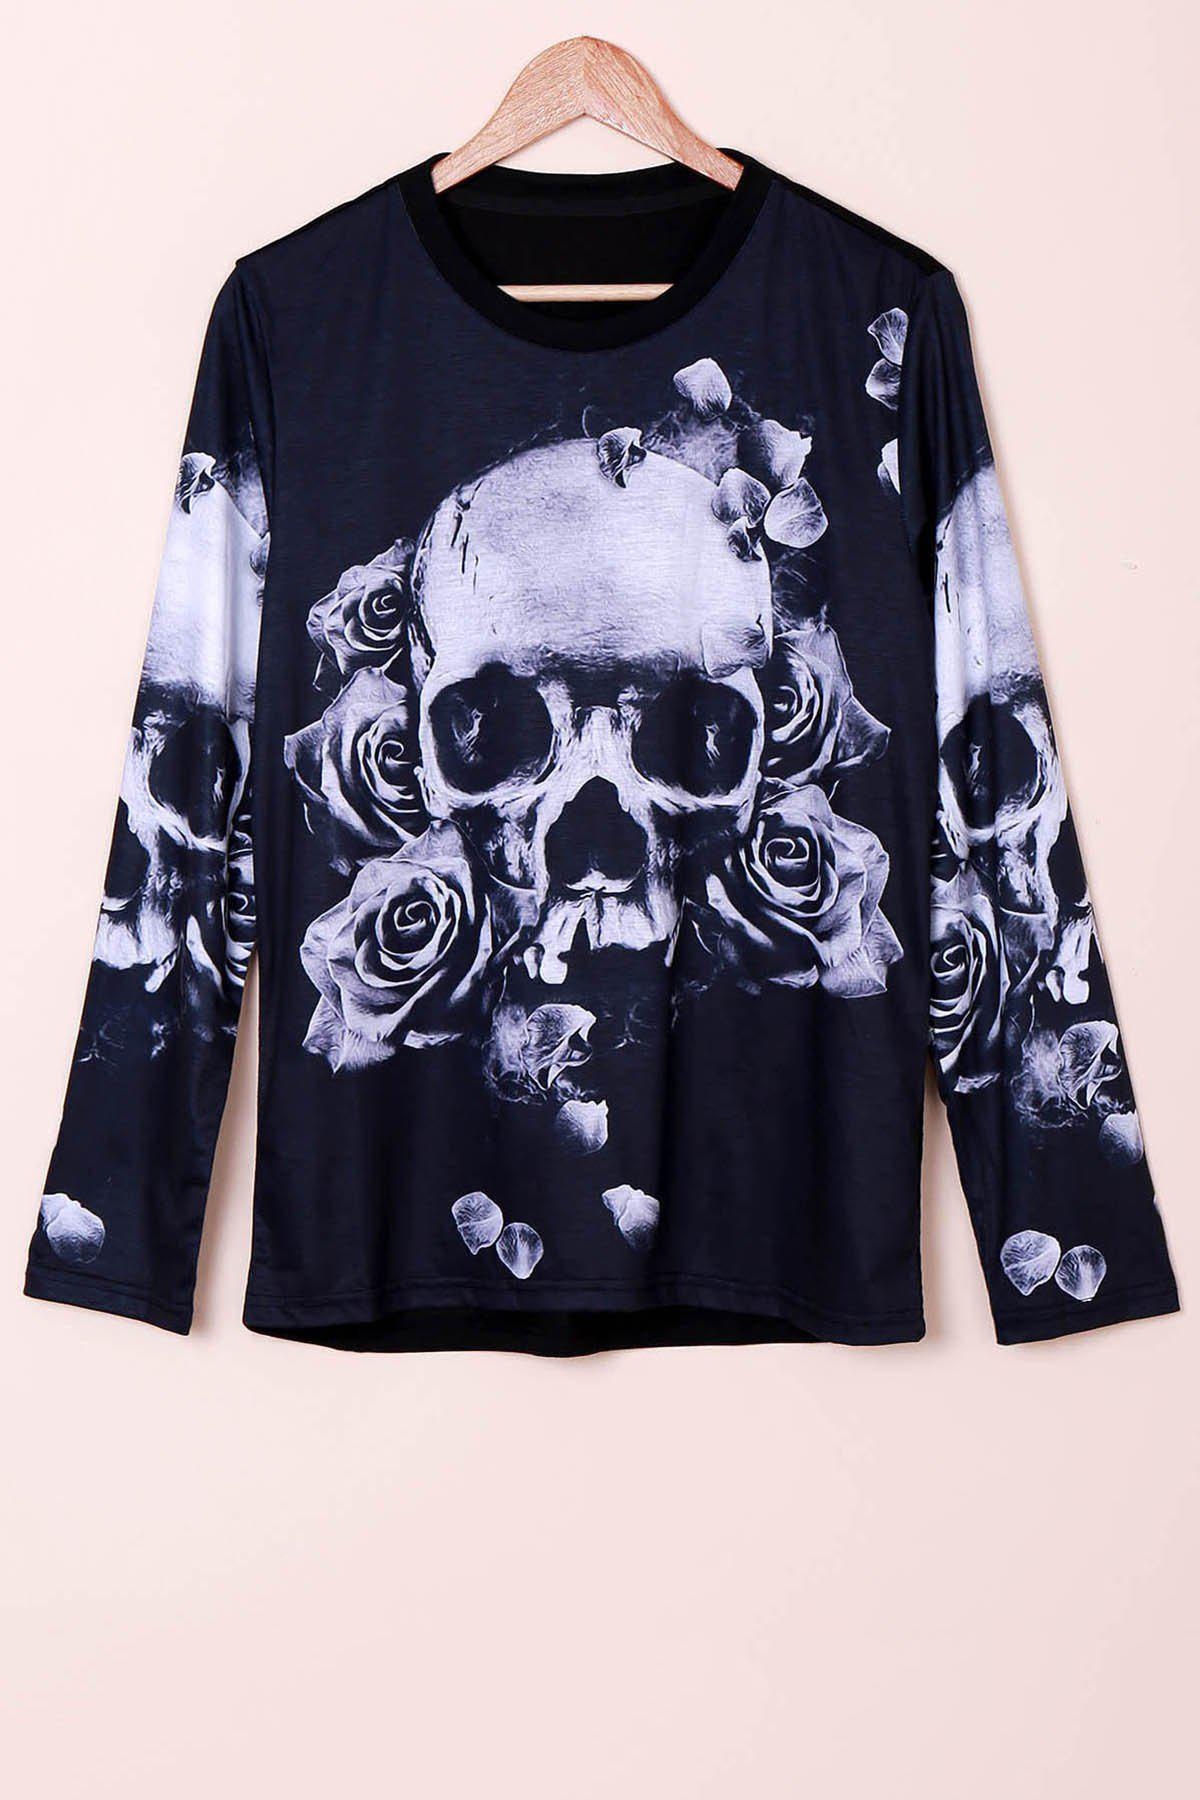 Men's Casual Long Sleeve Pullover Round Collar Skull Flower 3D Printing Sweatshirt